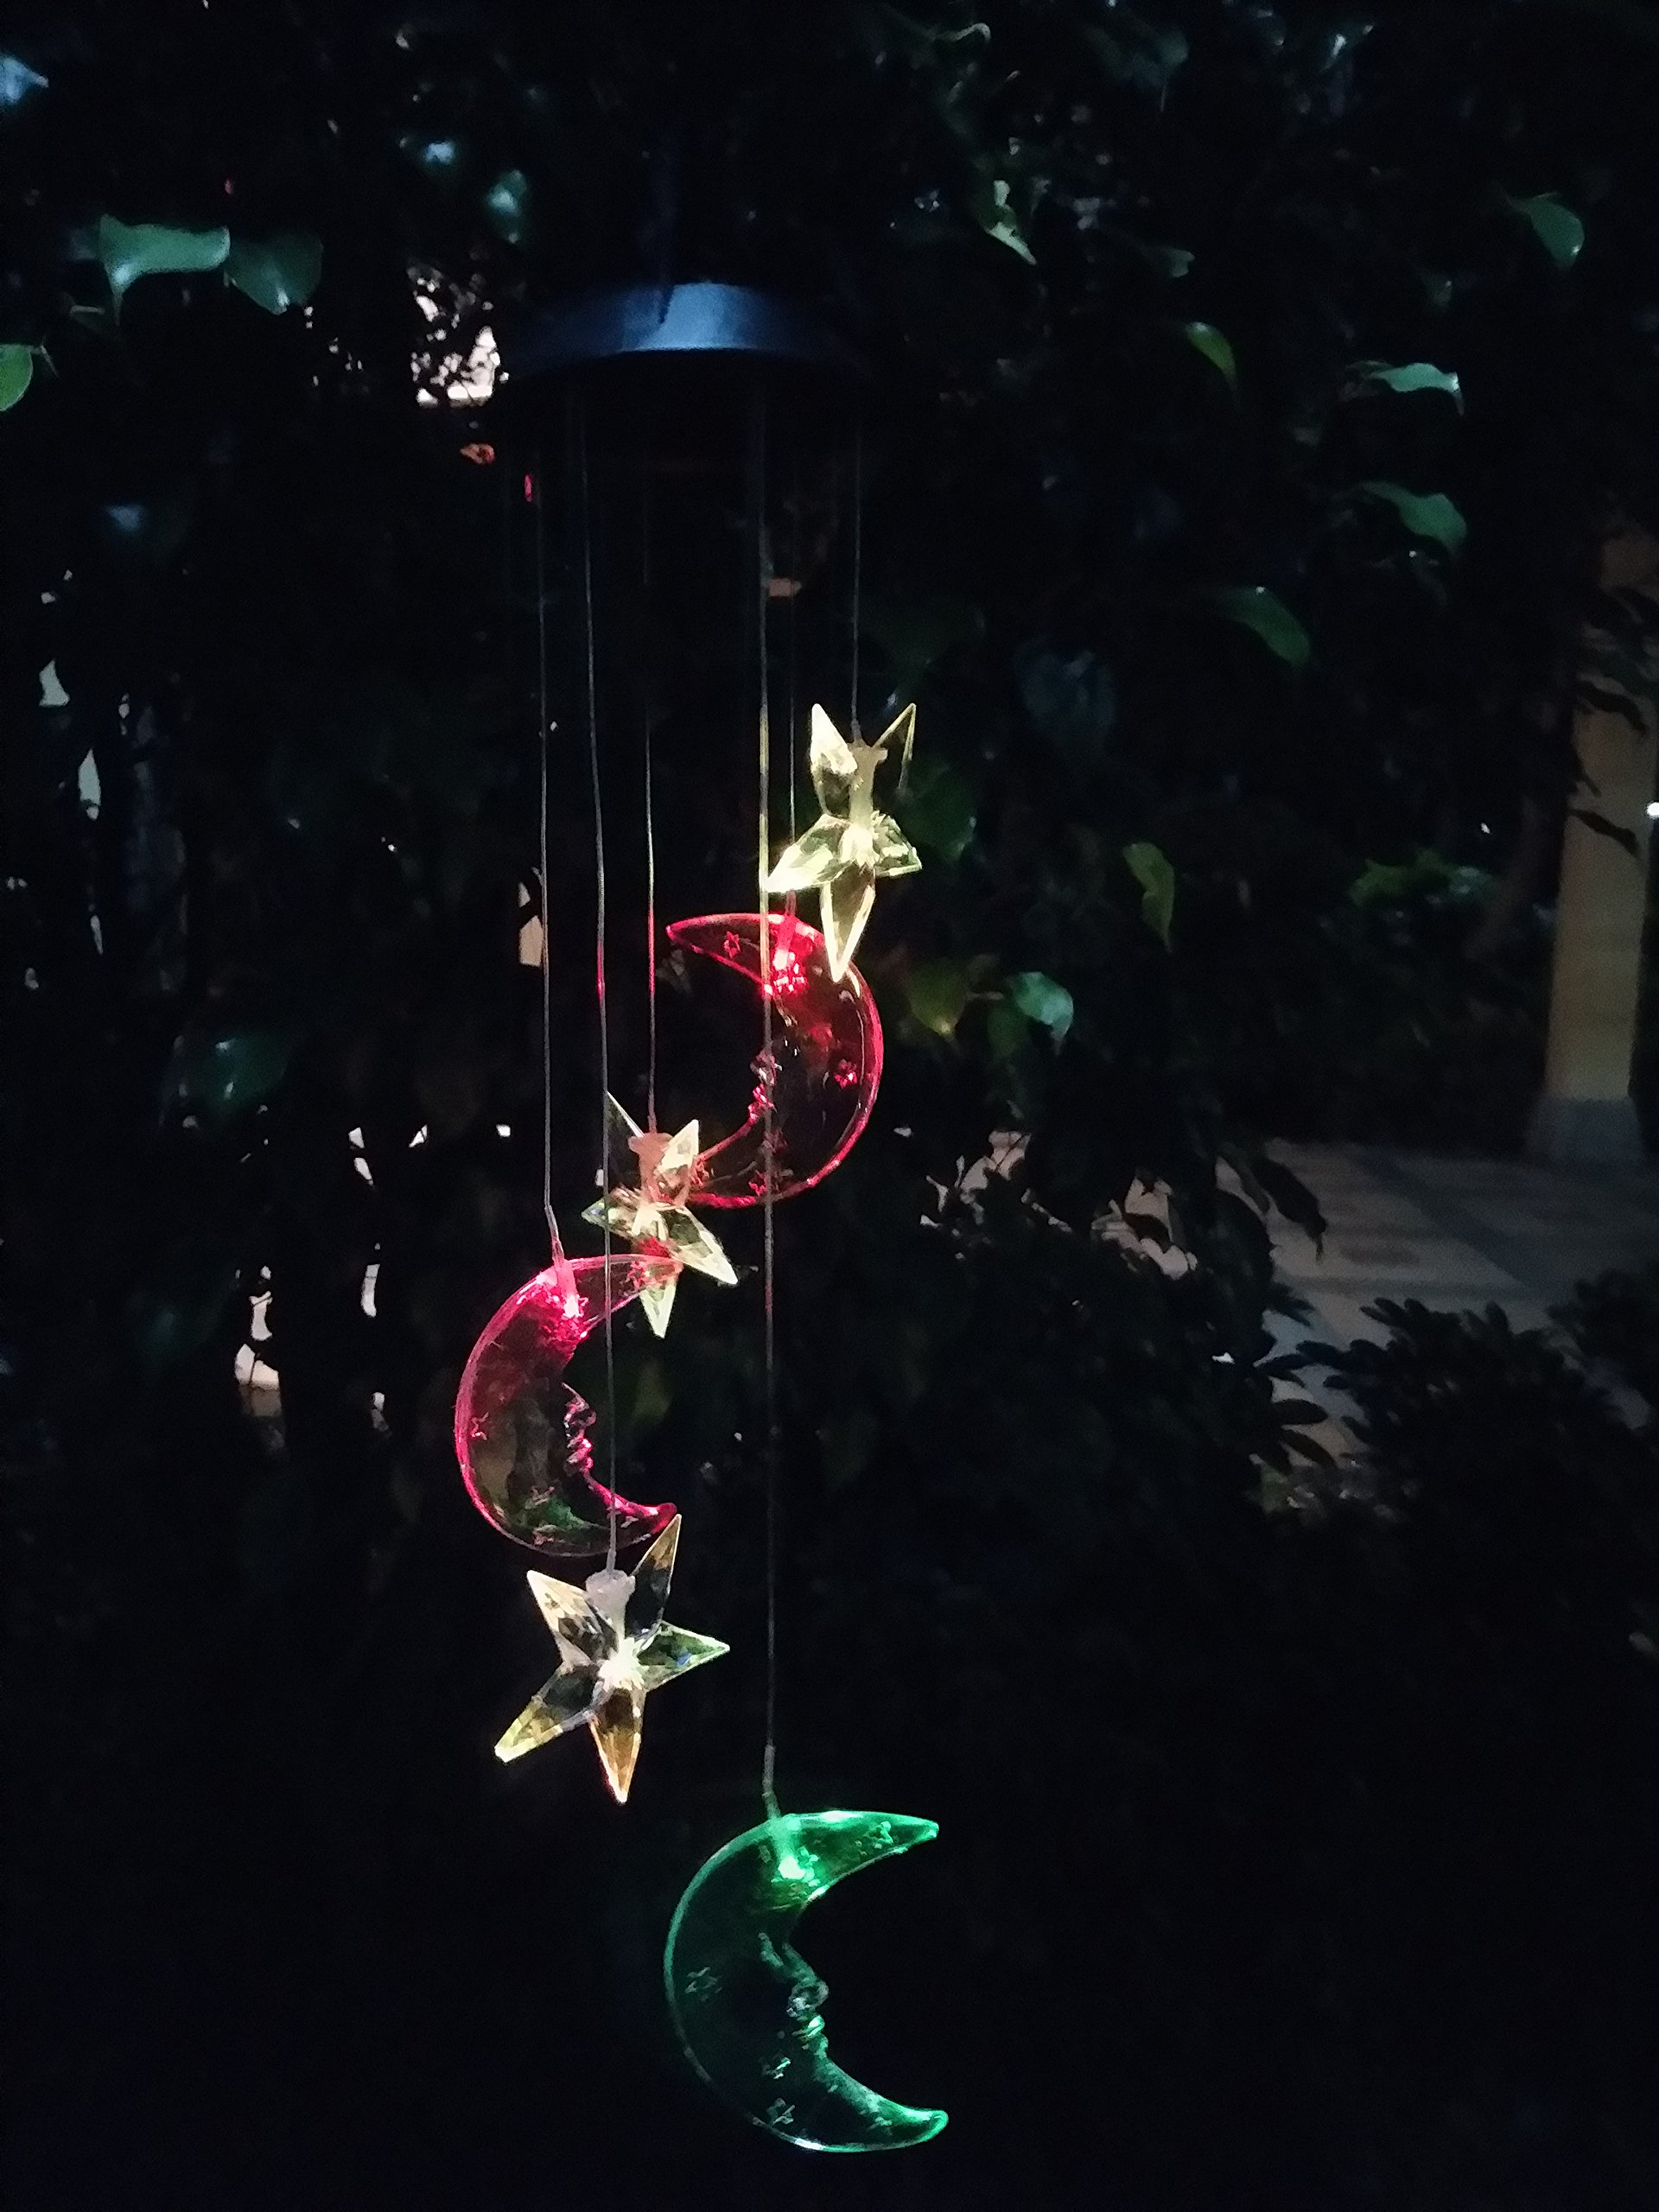 WiVison Mobile Lamp Multi-color Wind Spinner Solar Energy Hanging Windbell Night Light Waterproof Led Powered Spiral Windchime for Home Garden Patio Lawn Landscape Pond Pool Yard Decro Moon & Star